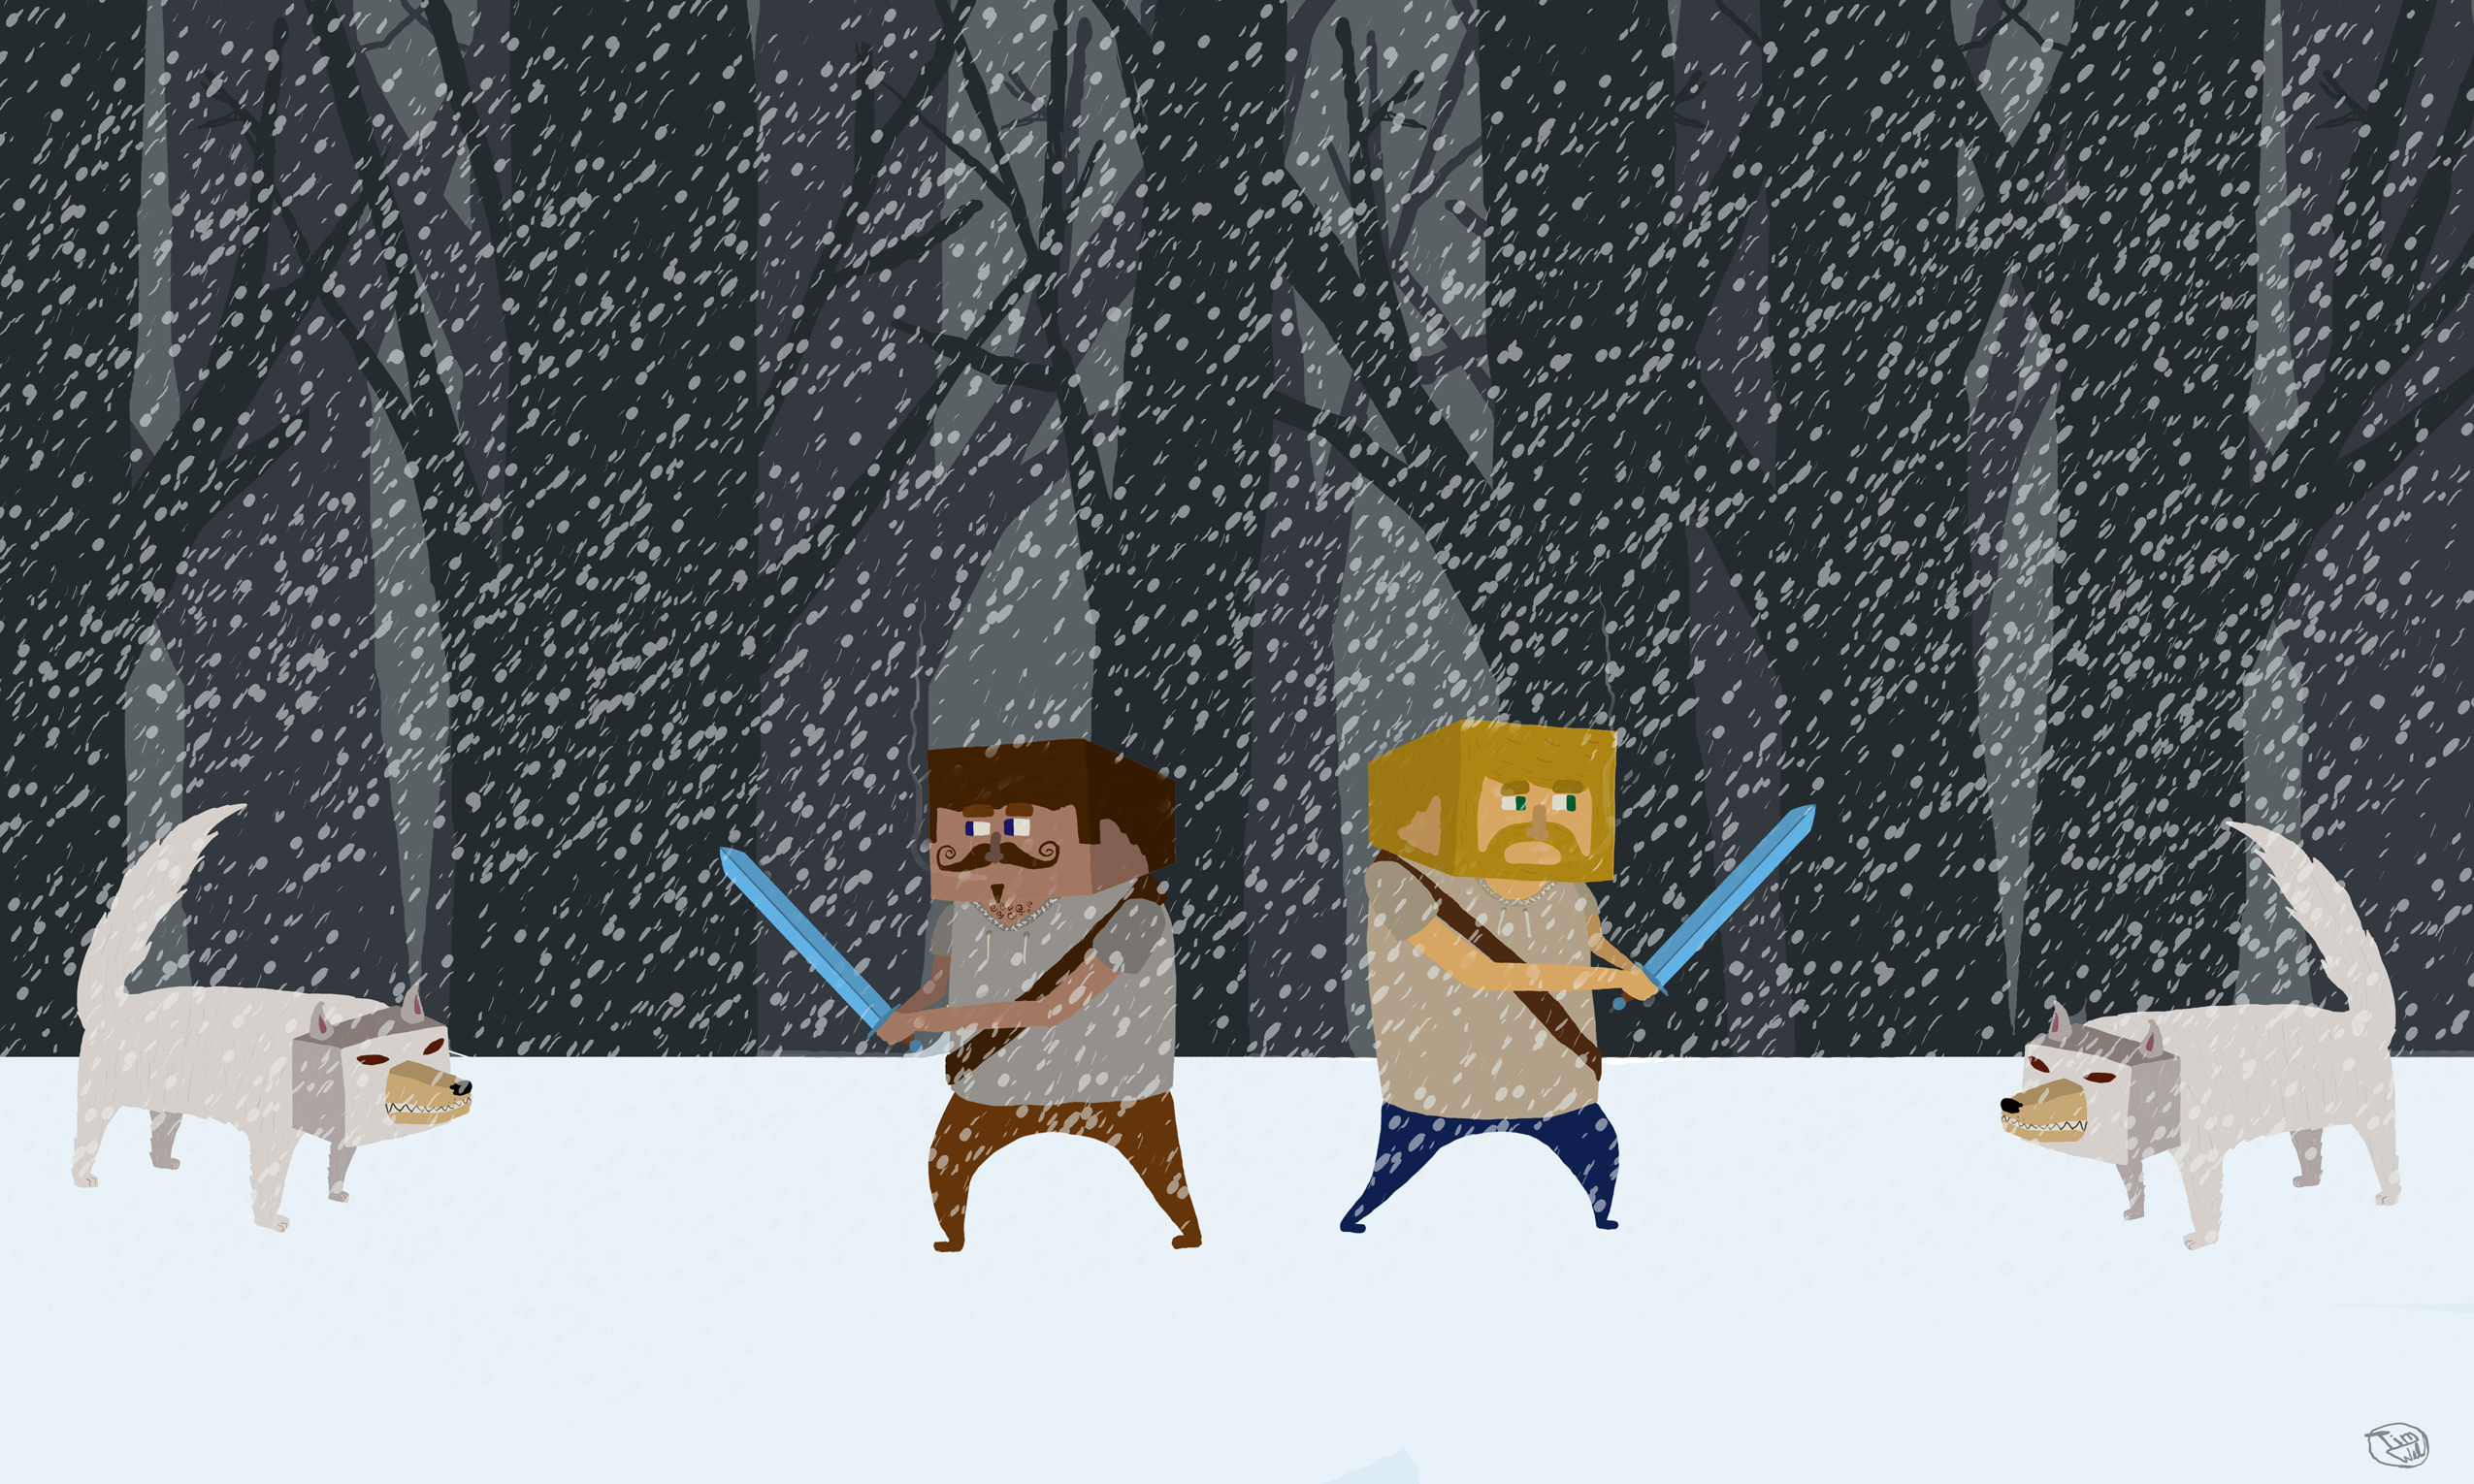 Fighting in the Snow